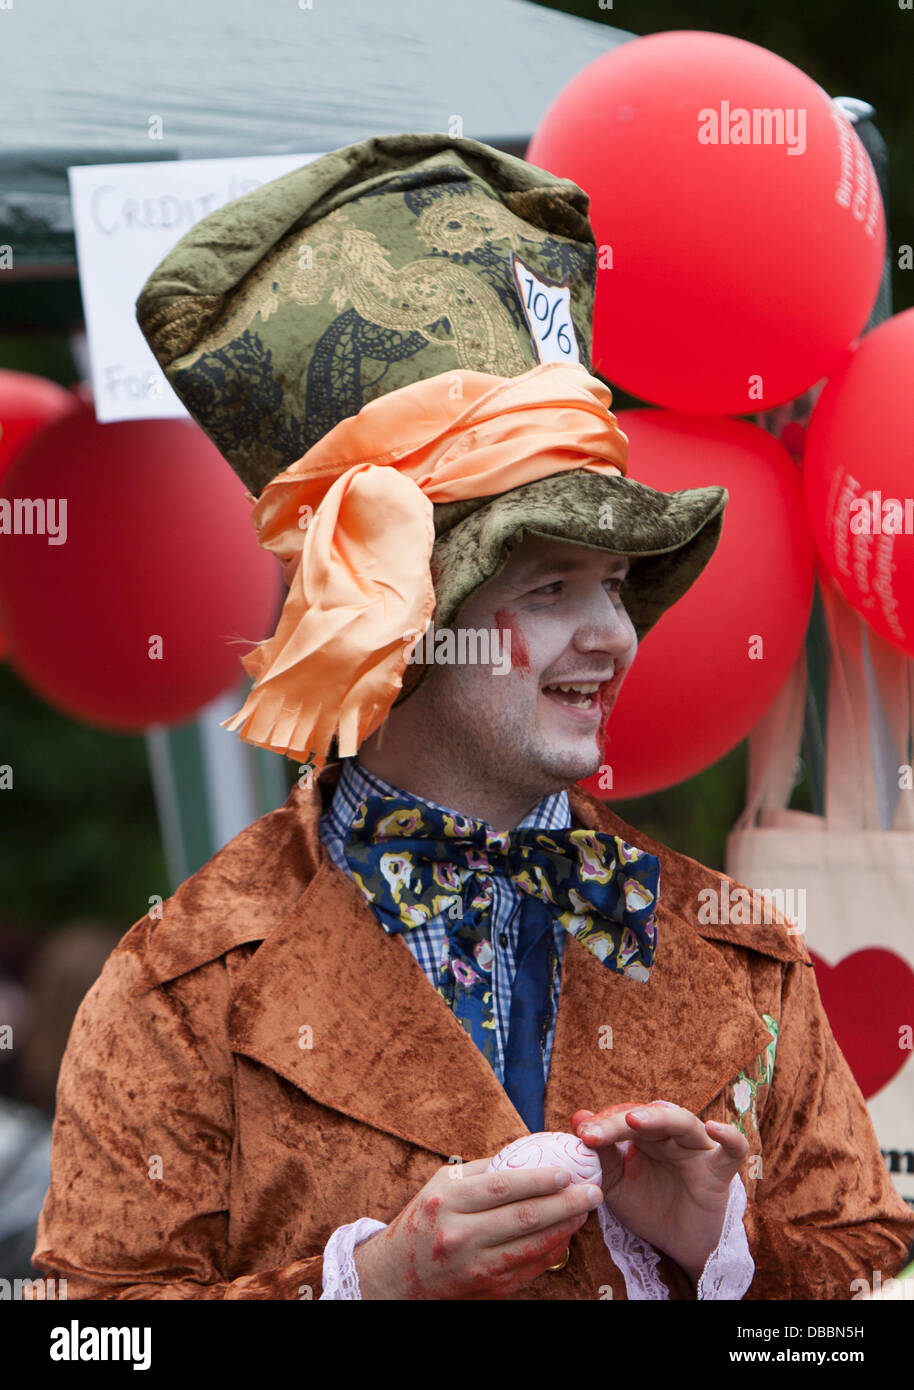 Mad hatter fancy dress stock photos mad hatter fancy for Mitchell s fish market birmingham